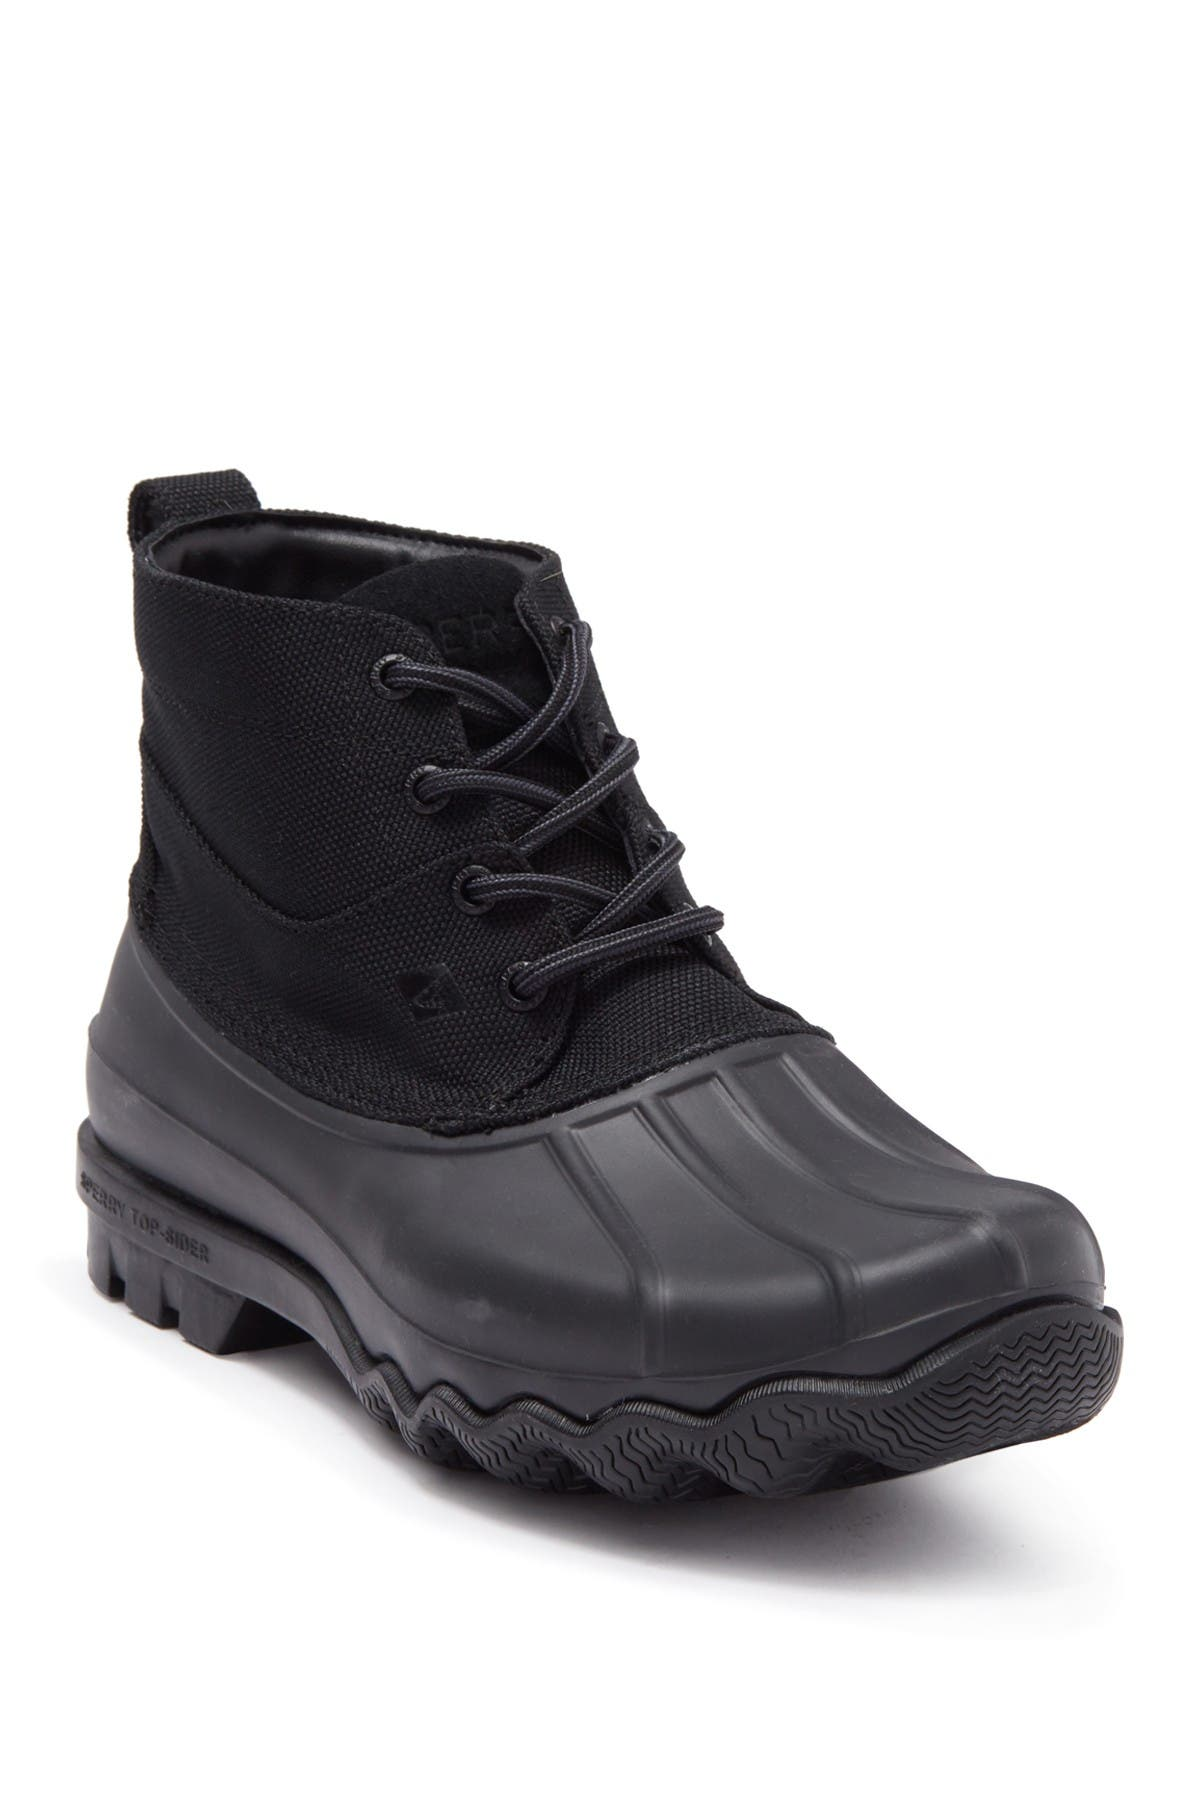 Image of Sperry Brewster Waterproof Low Duck Boot